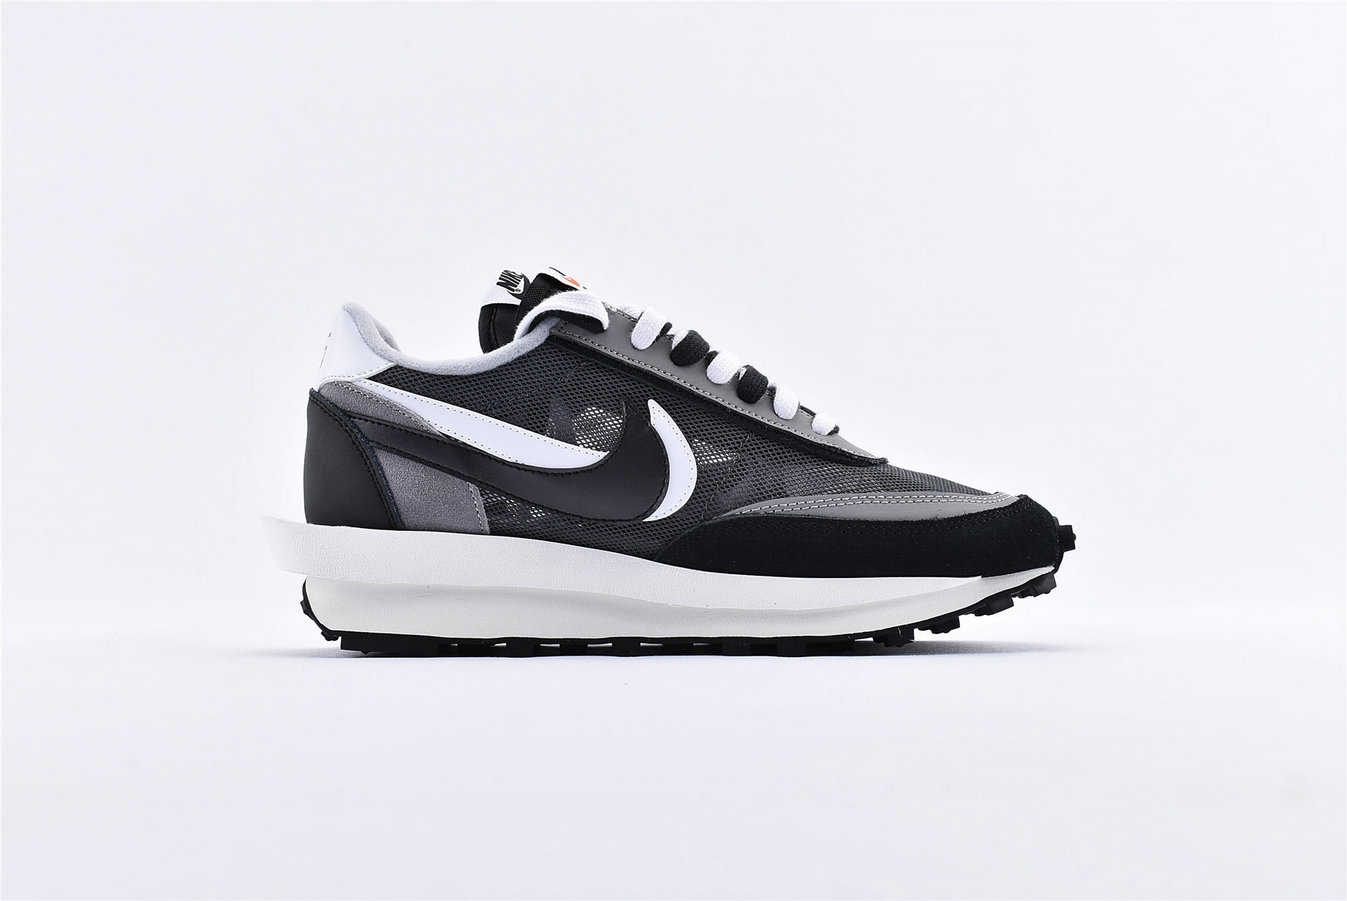 Where To Buy Womens Sacai x Nike LDV Waffle Daybreak Black Anthracite White Gunsmoke BV0073-001